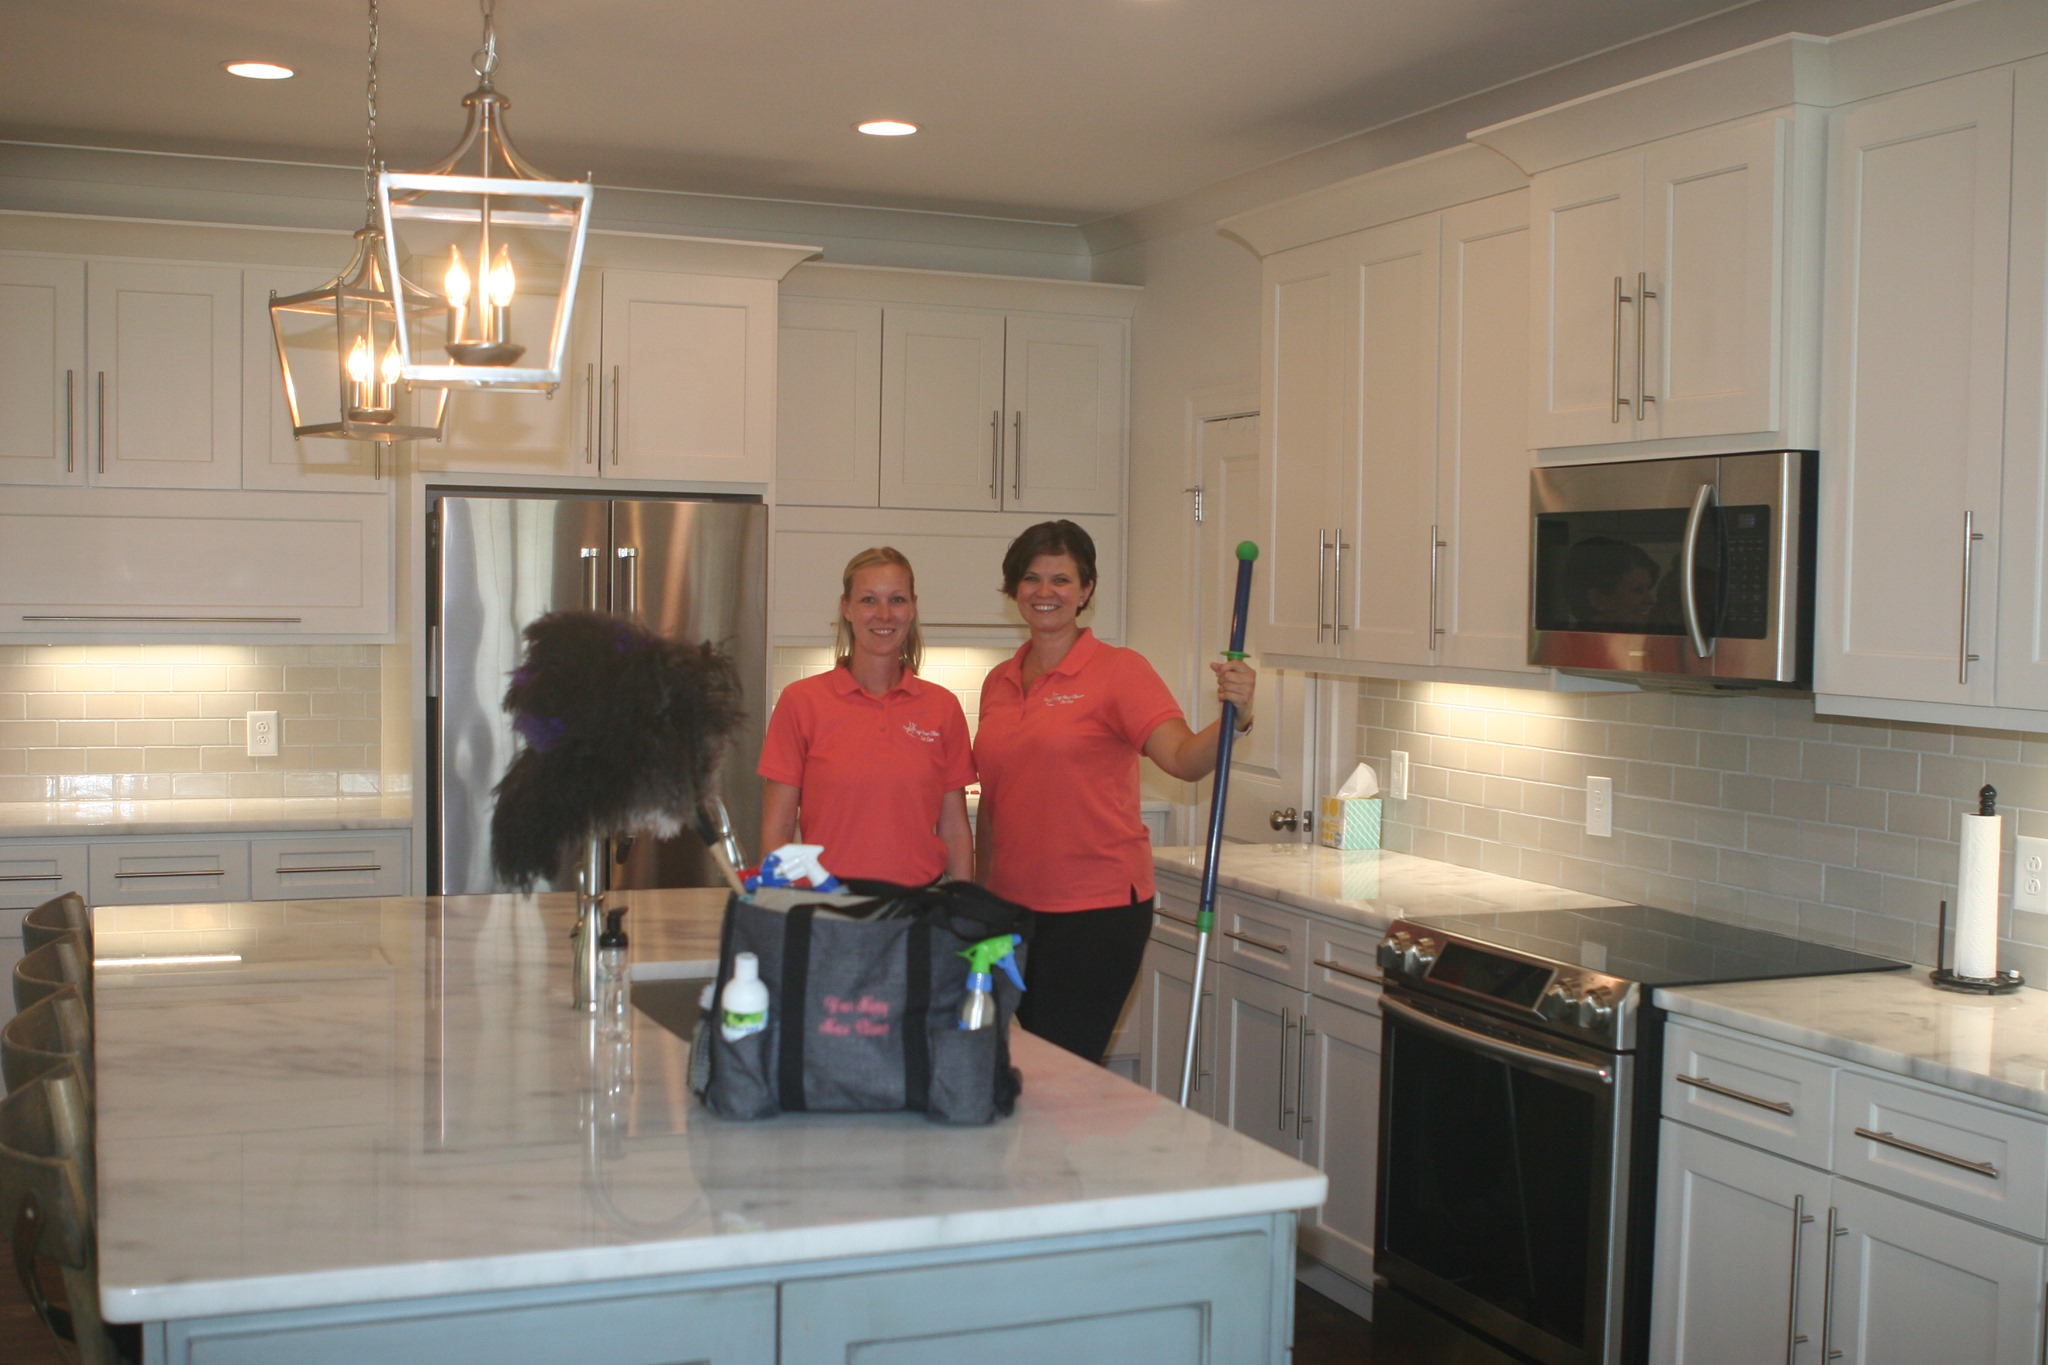 Tennessee's Top Rated Local® House Cleaning Companies Award Winner: Your Happy House Cleaner